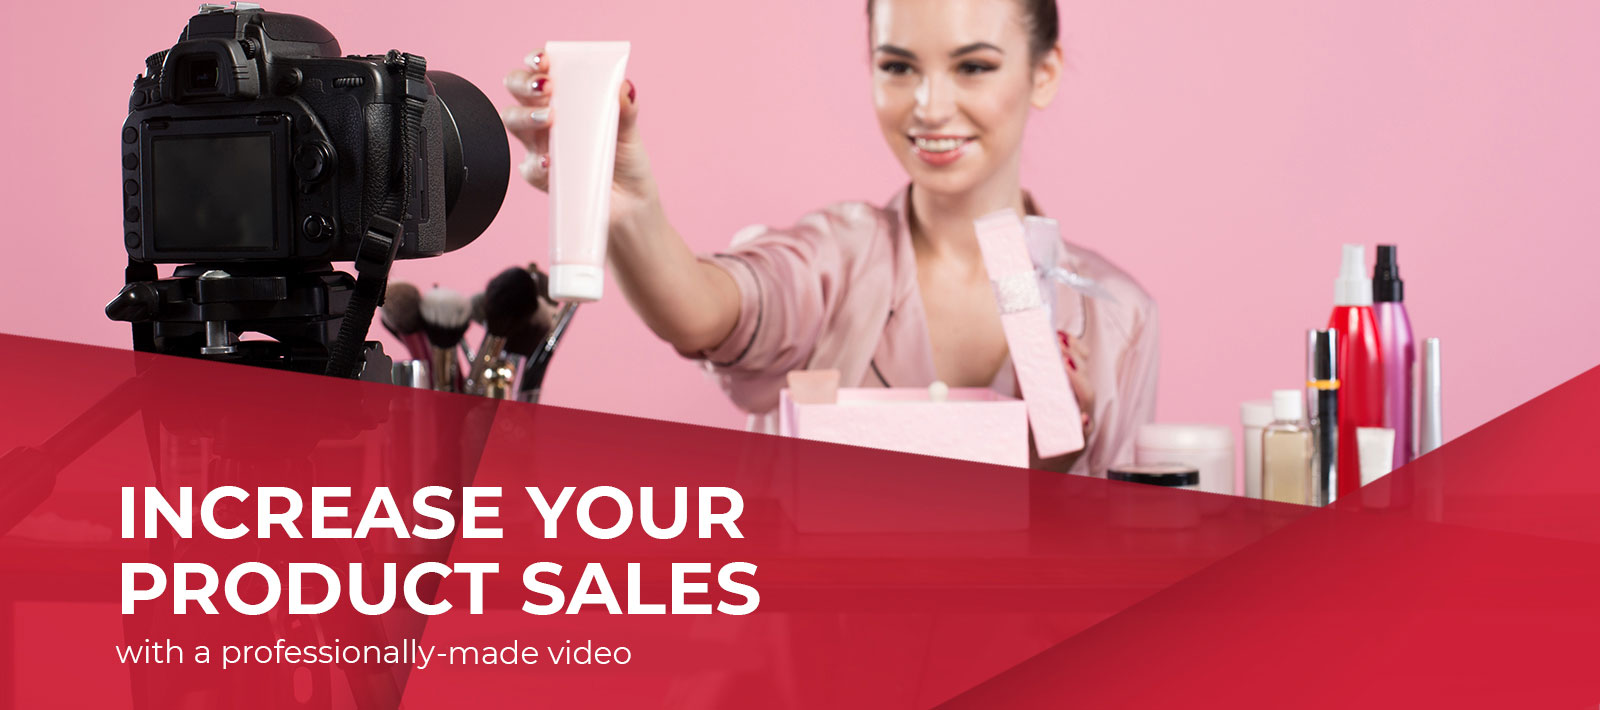 Increase your product sales with a professionally made video by us